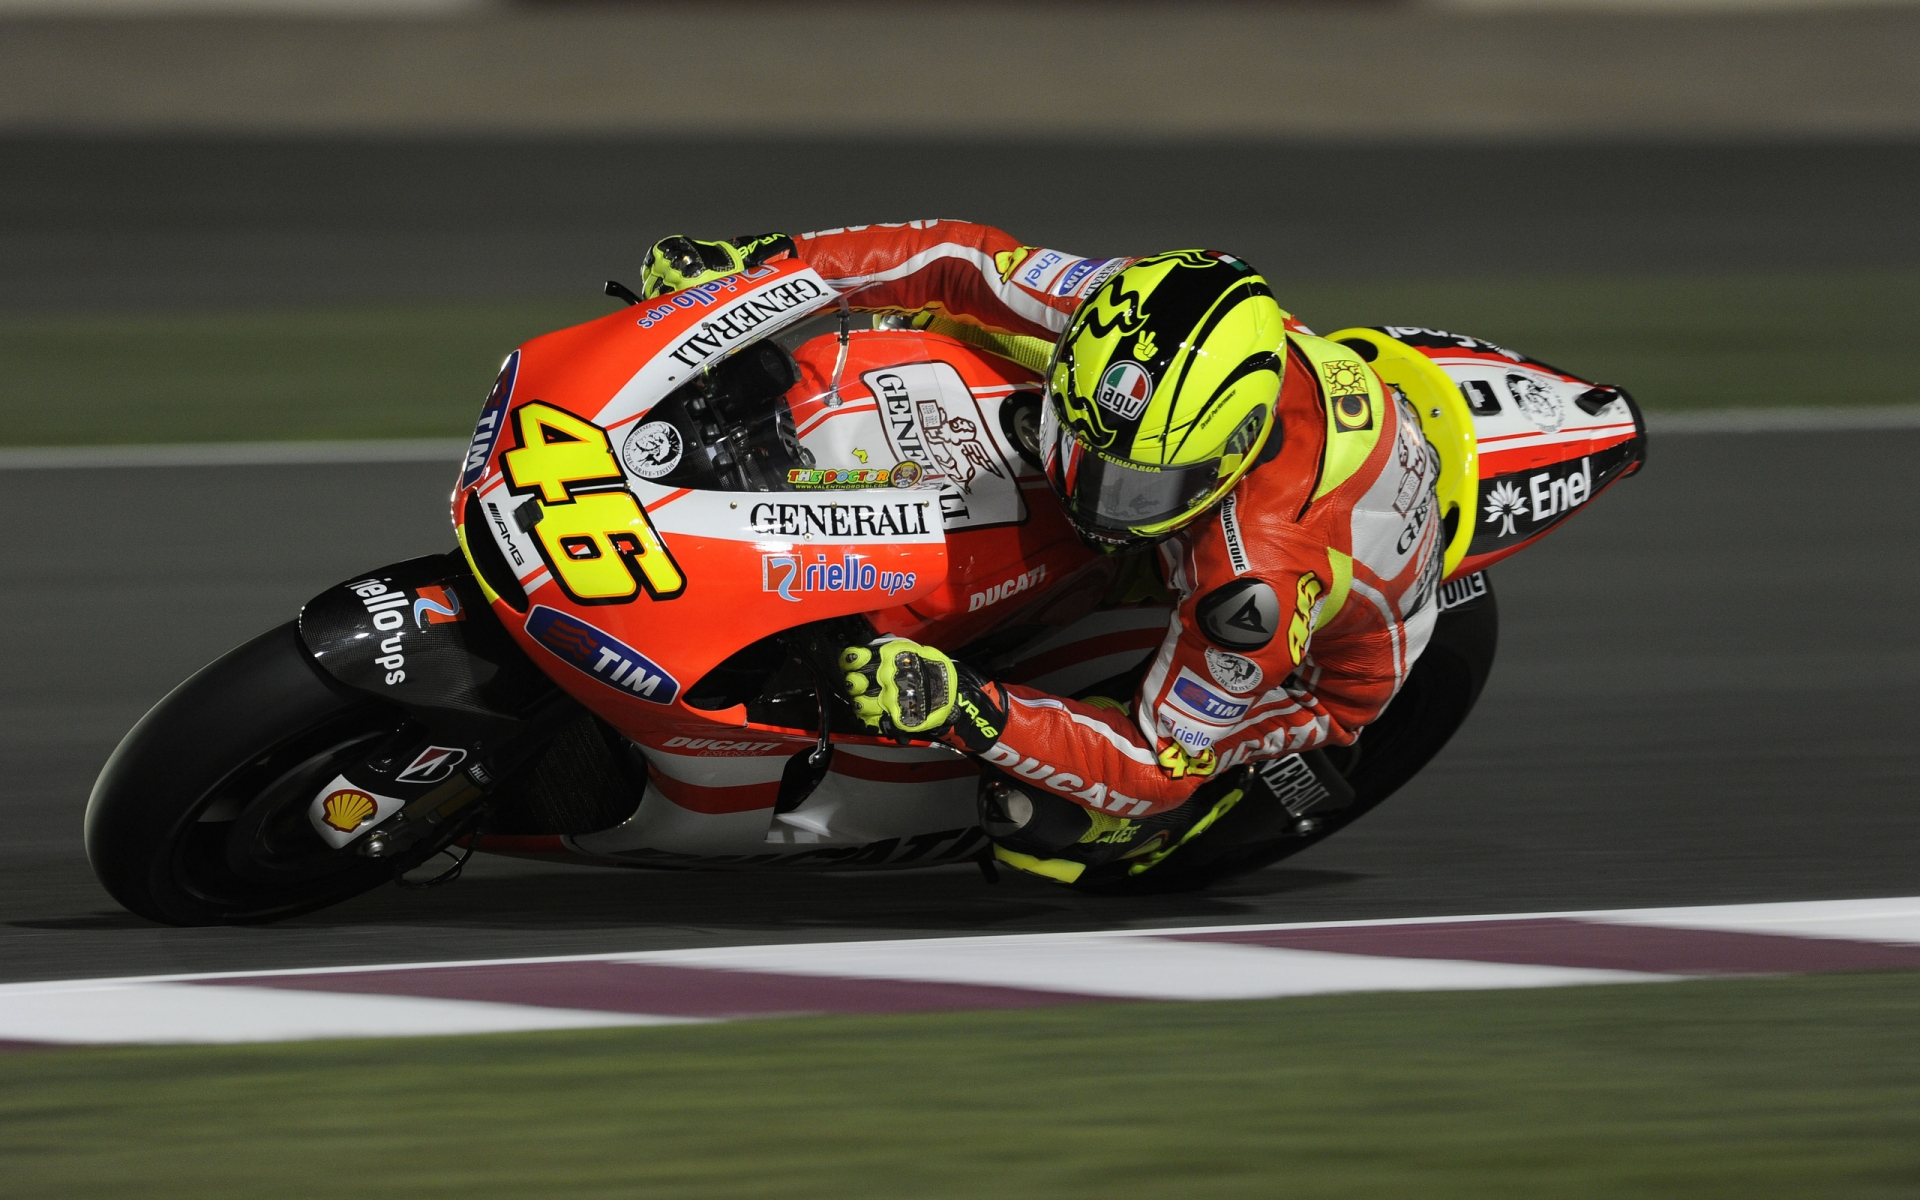 Valentino Rossi Ducati for 1920 x 1200 widescreen resolution